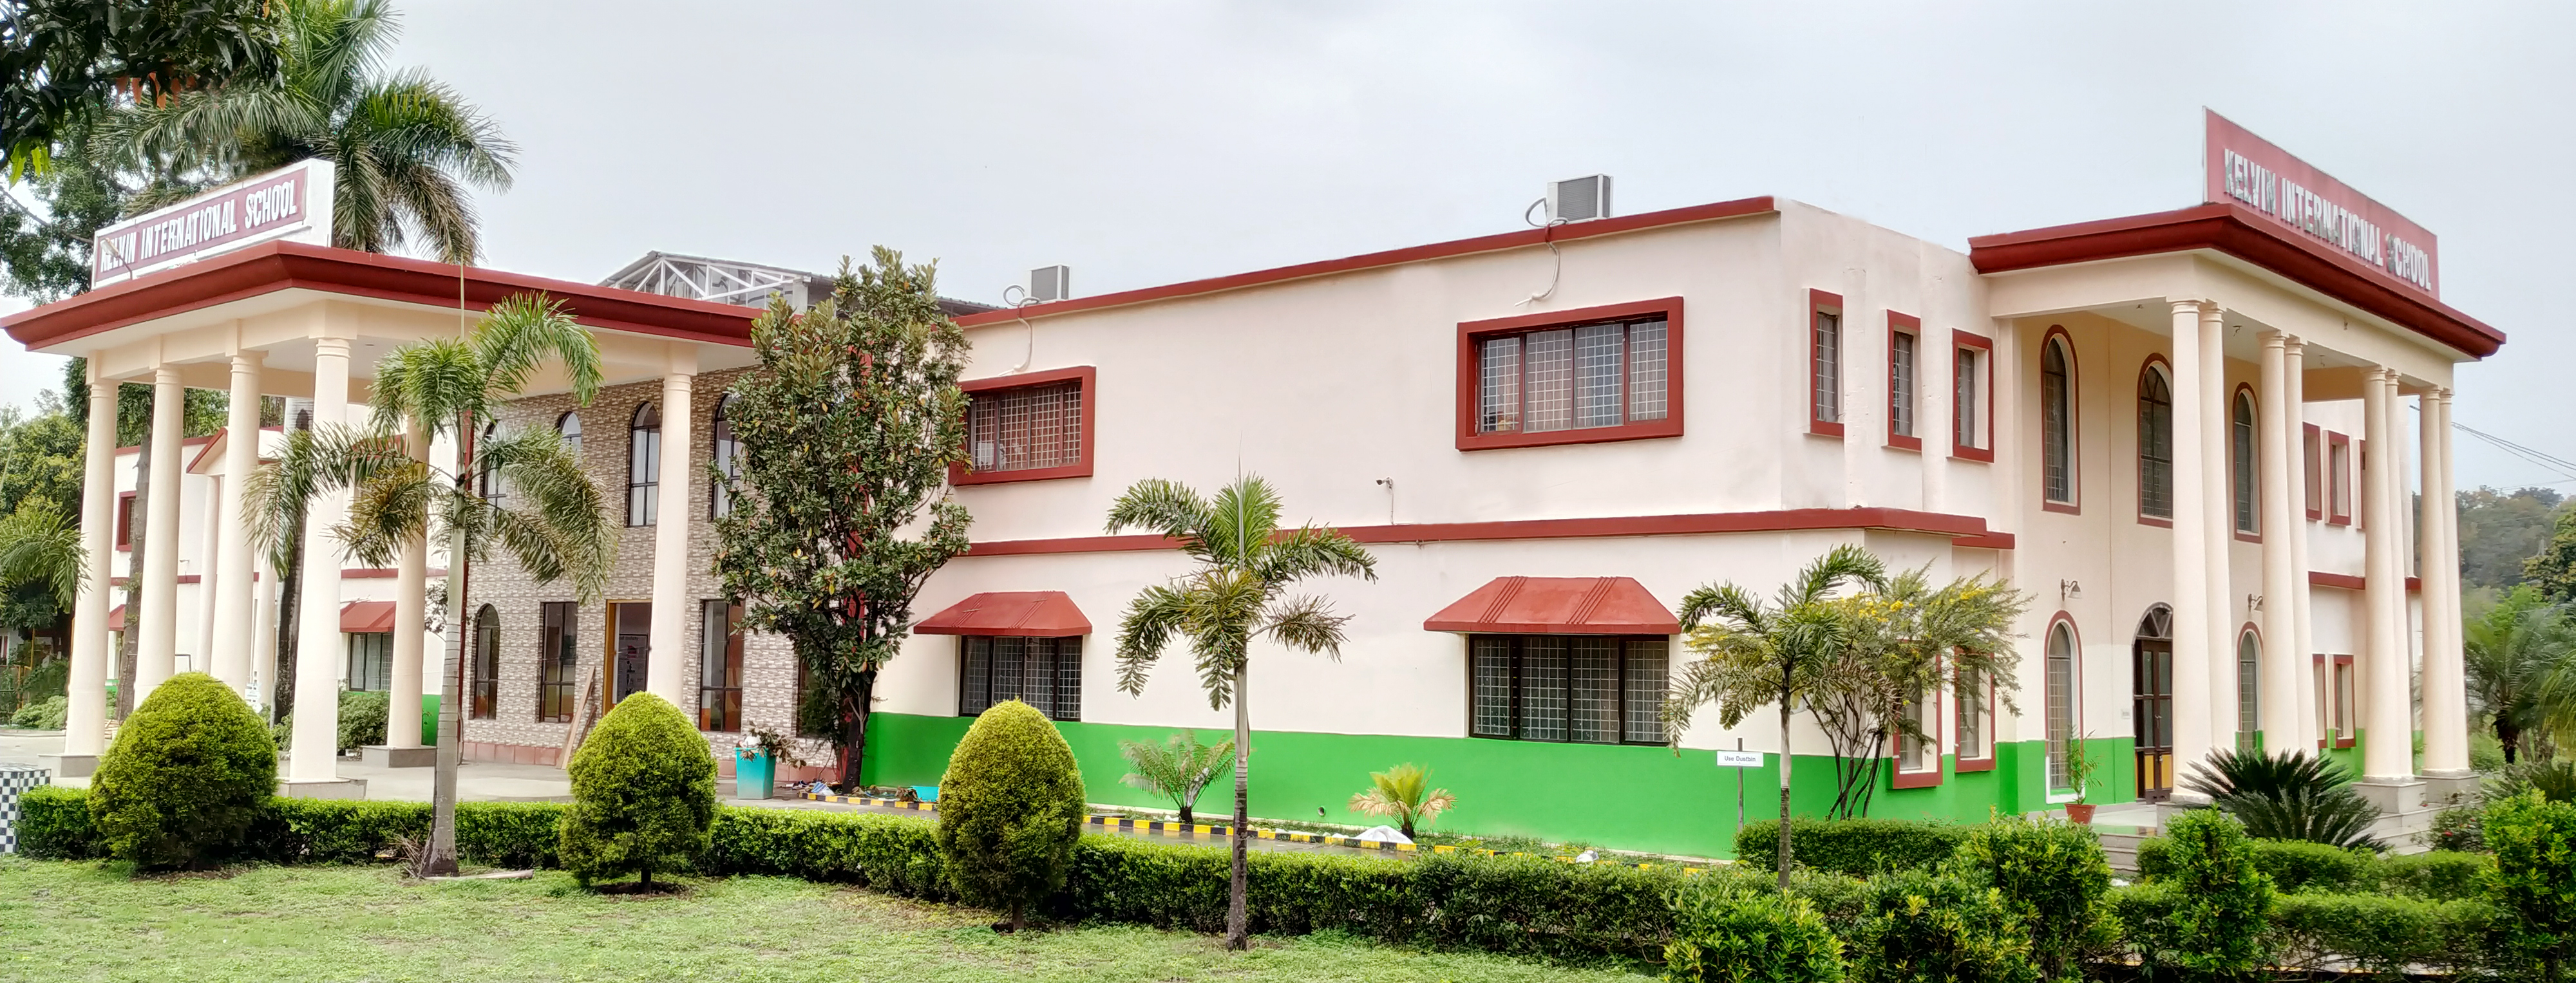 Kelvin International School Dehradun